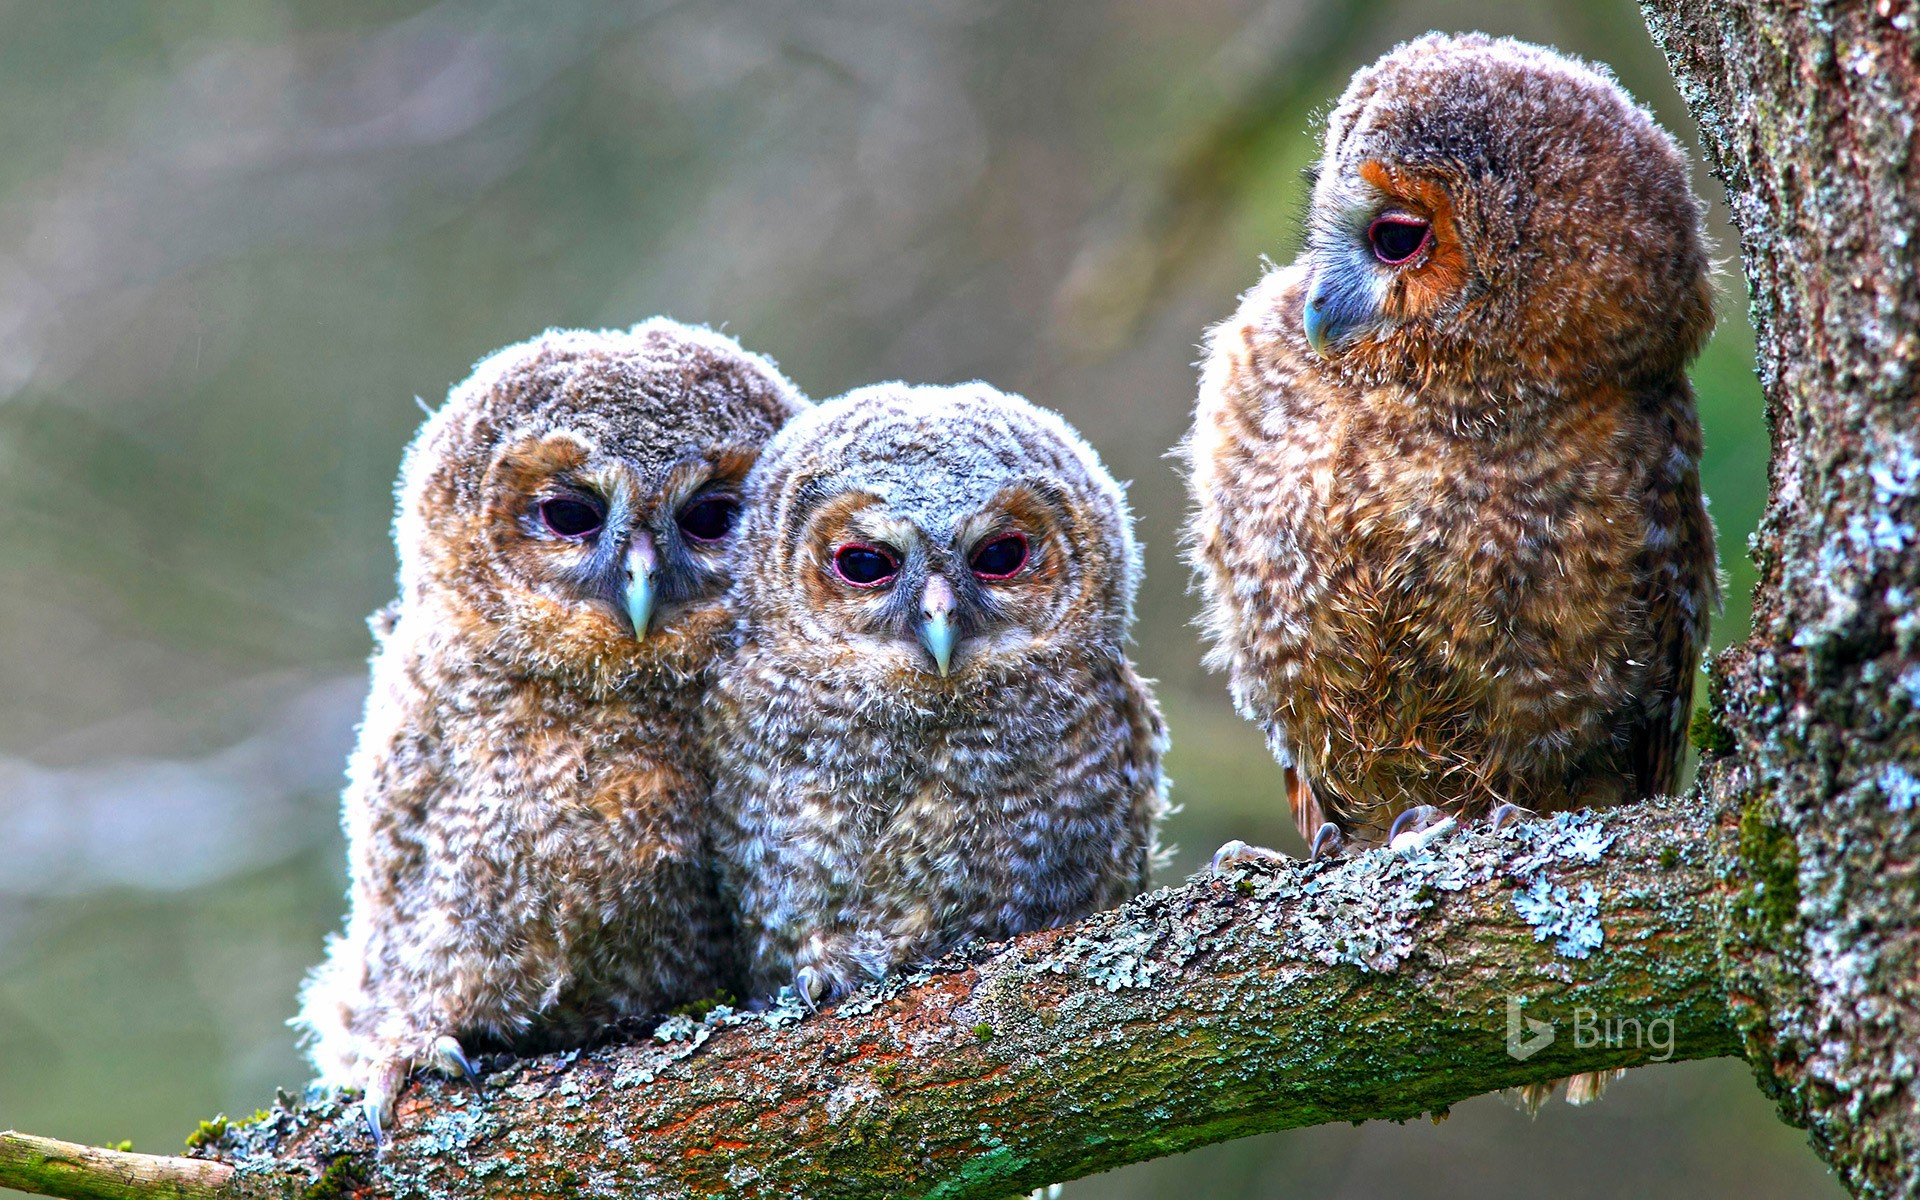 Young tawny owls perched on a tree, Hessen, Germany